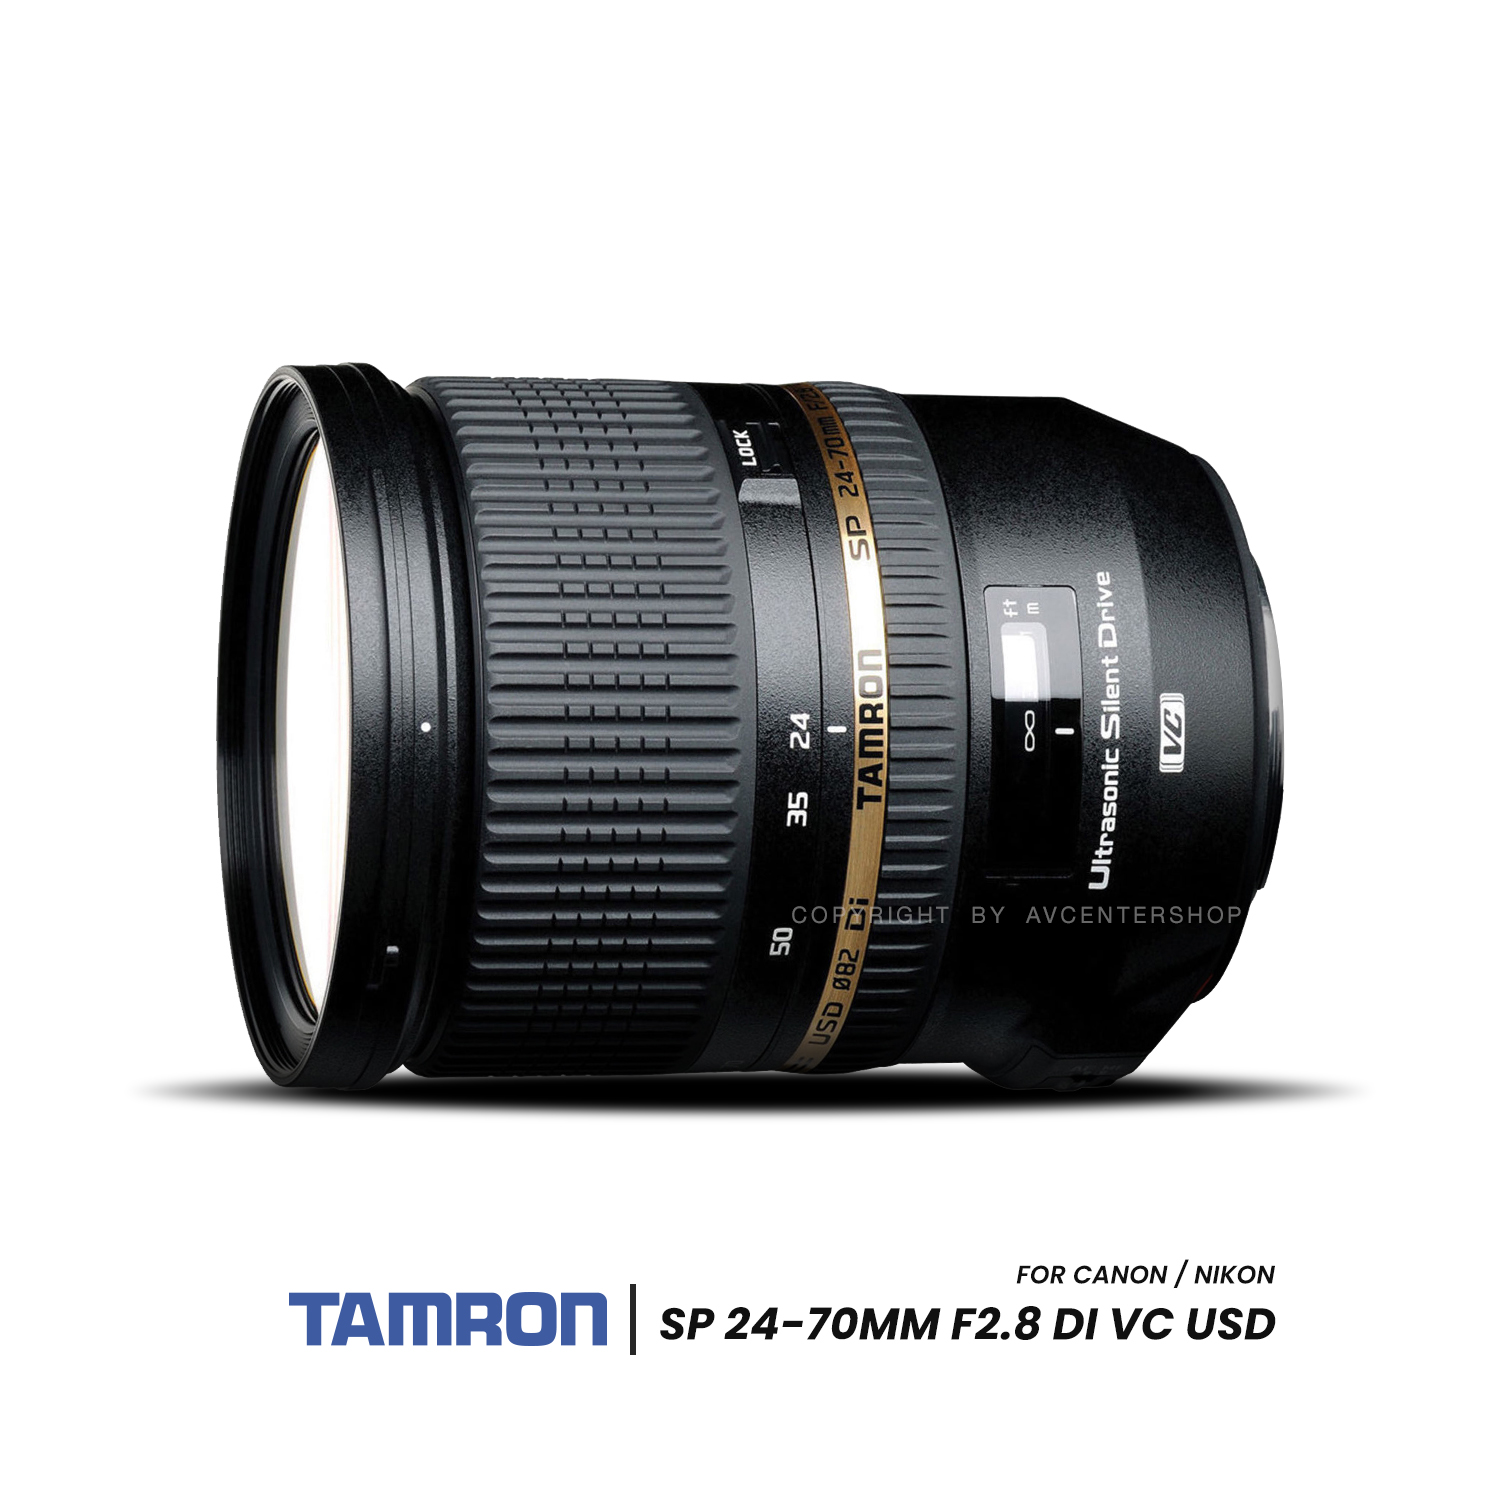 Tamron Lens SP 24-70mm f/2.8 VC